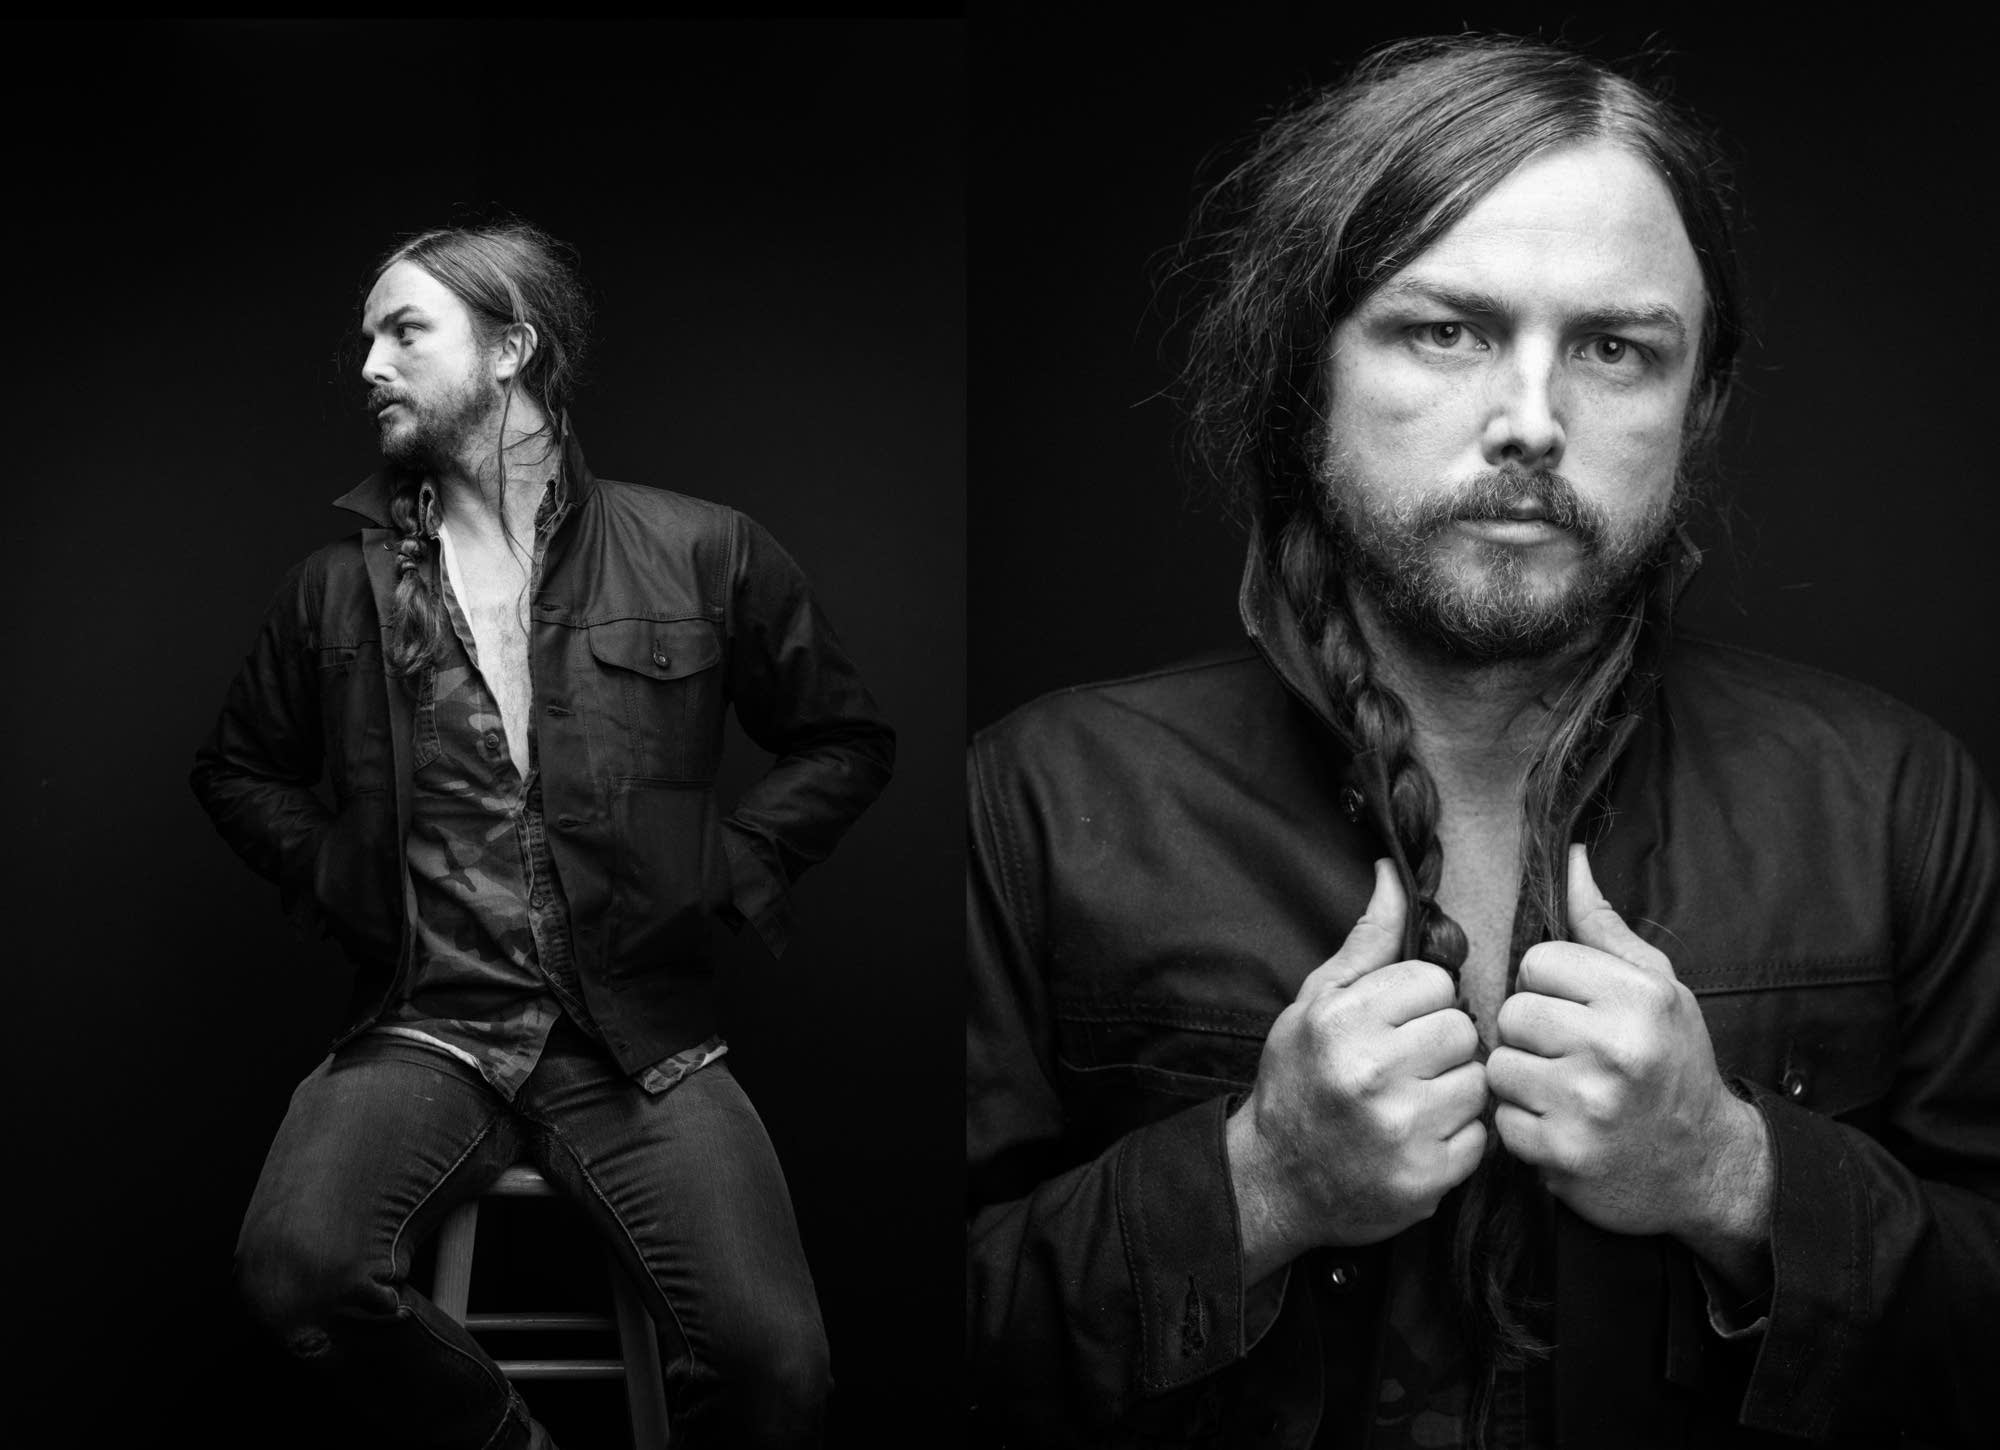 J. Roddy Walston portraits taken at The Current.